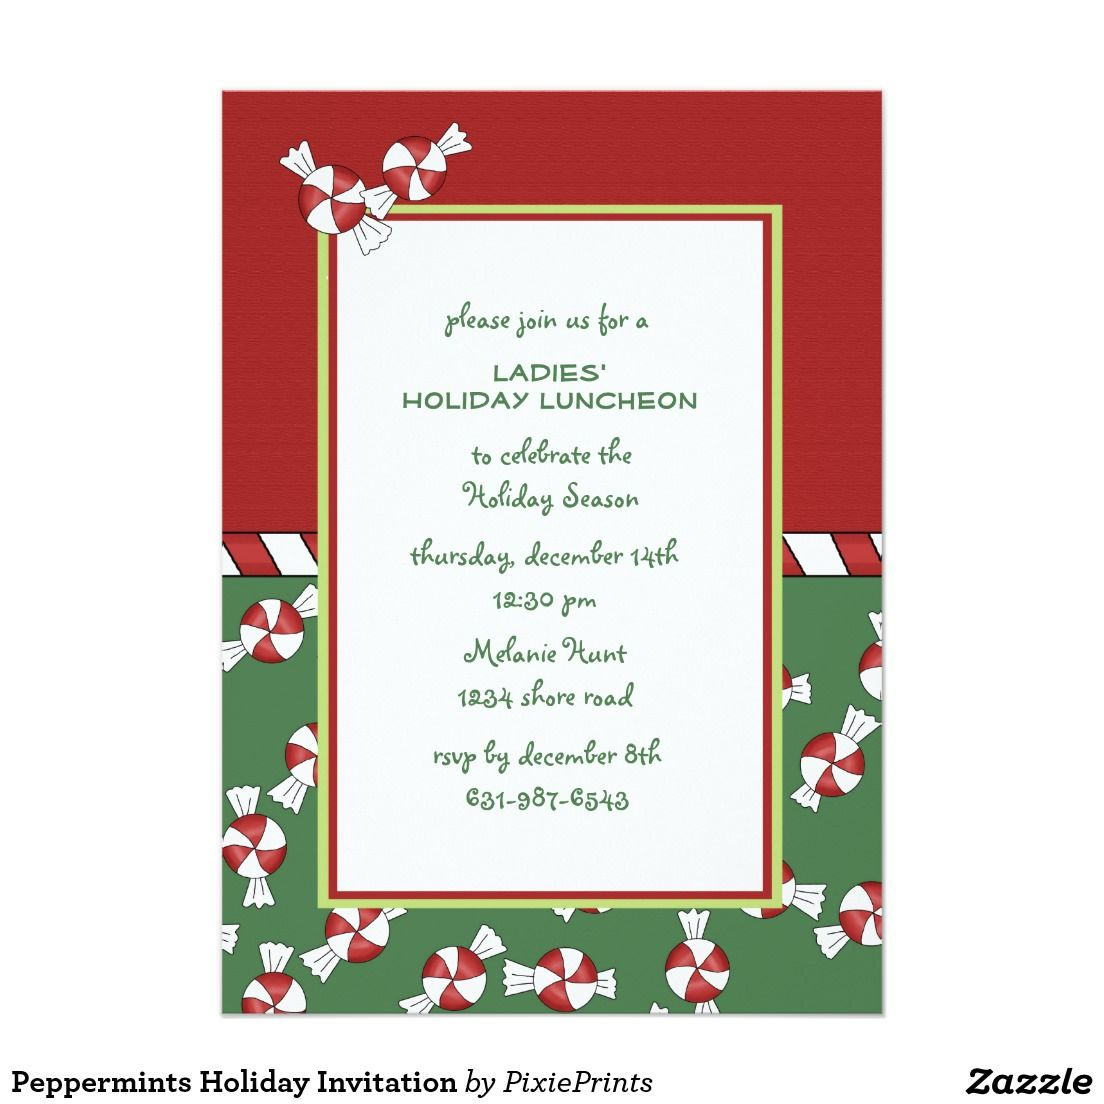 Fantastic zazzle party invitations images resume ideas peppermints holiday invitation christmas party invitations m4hsunfo